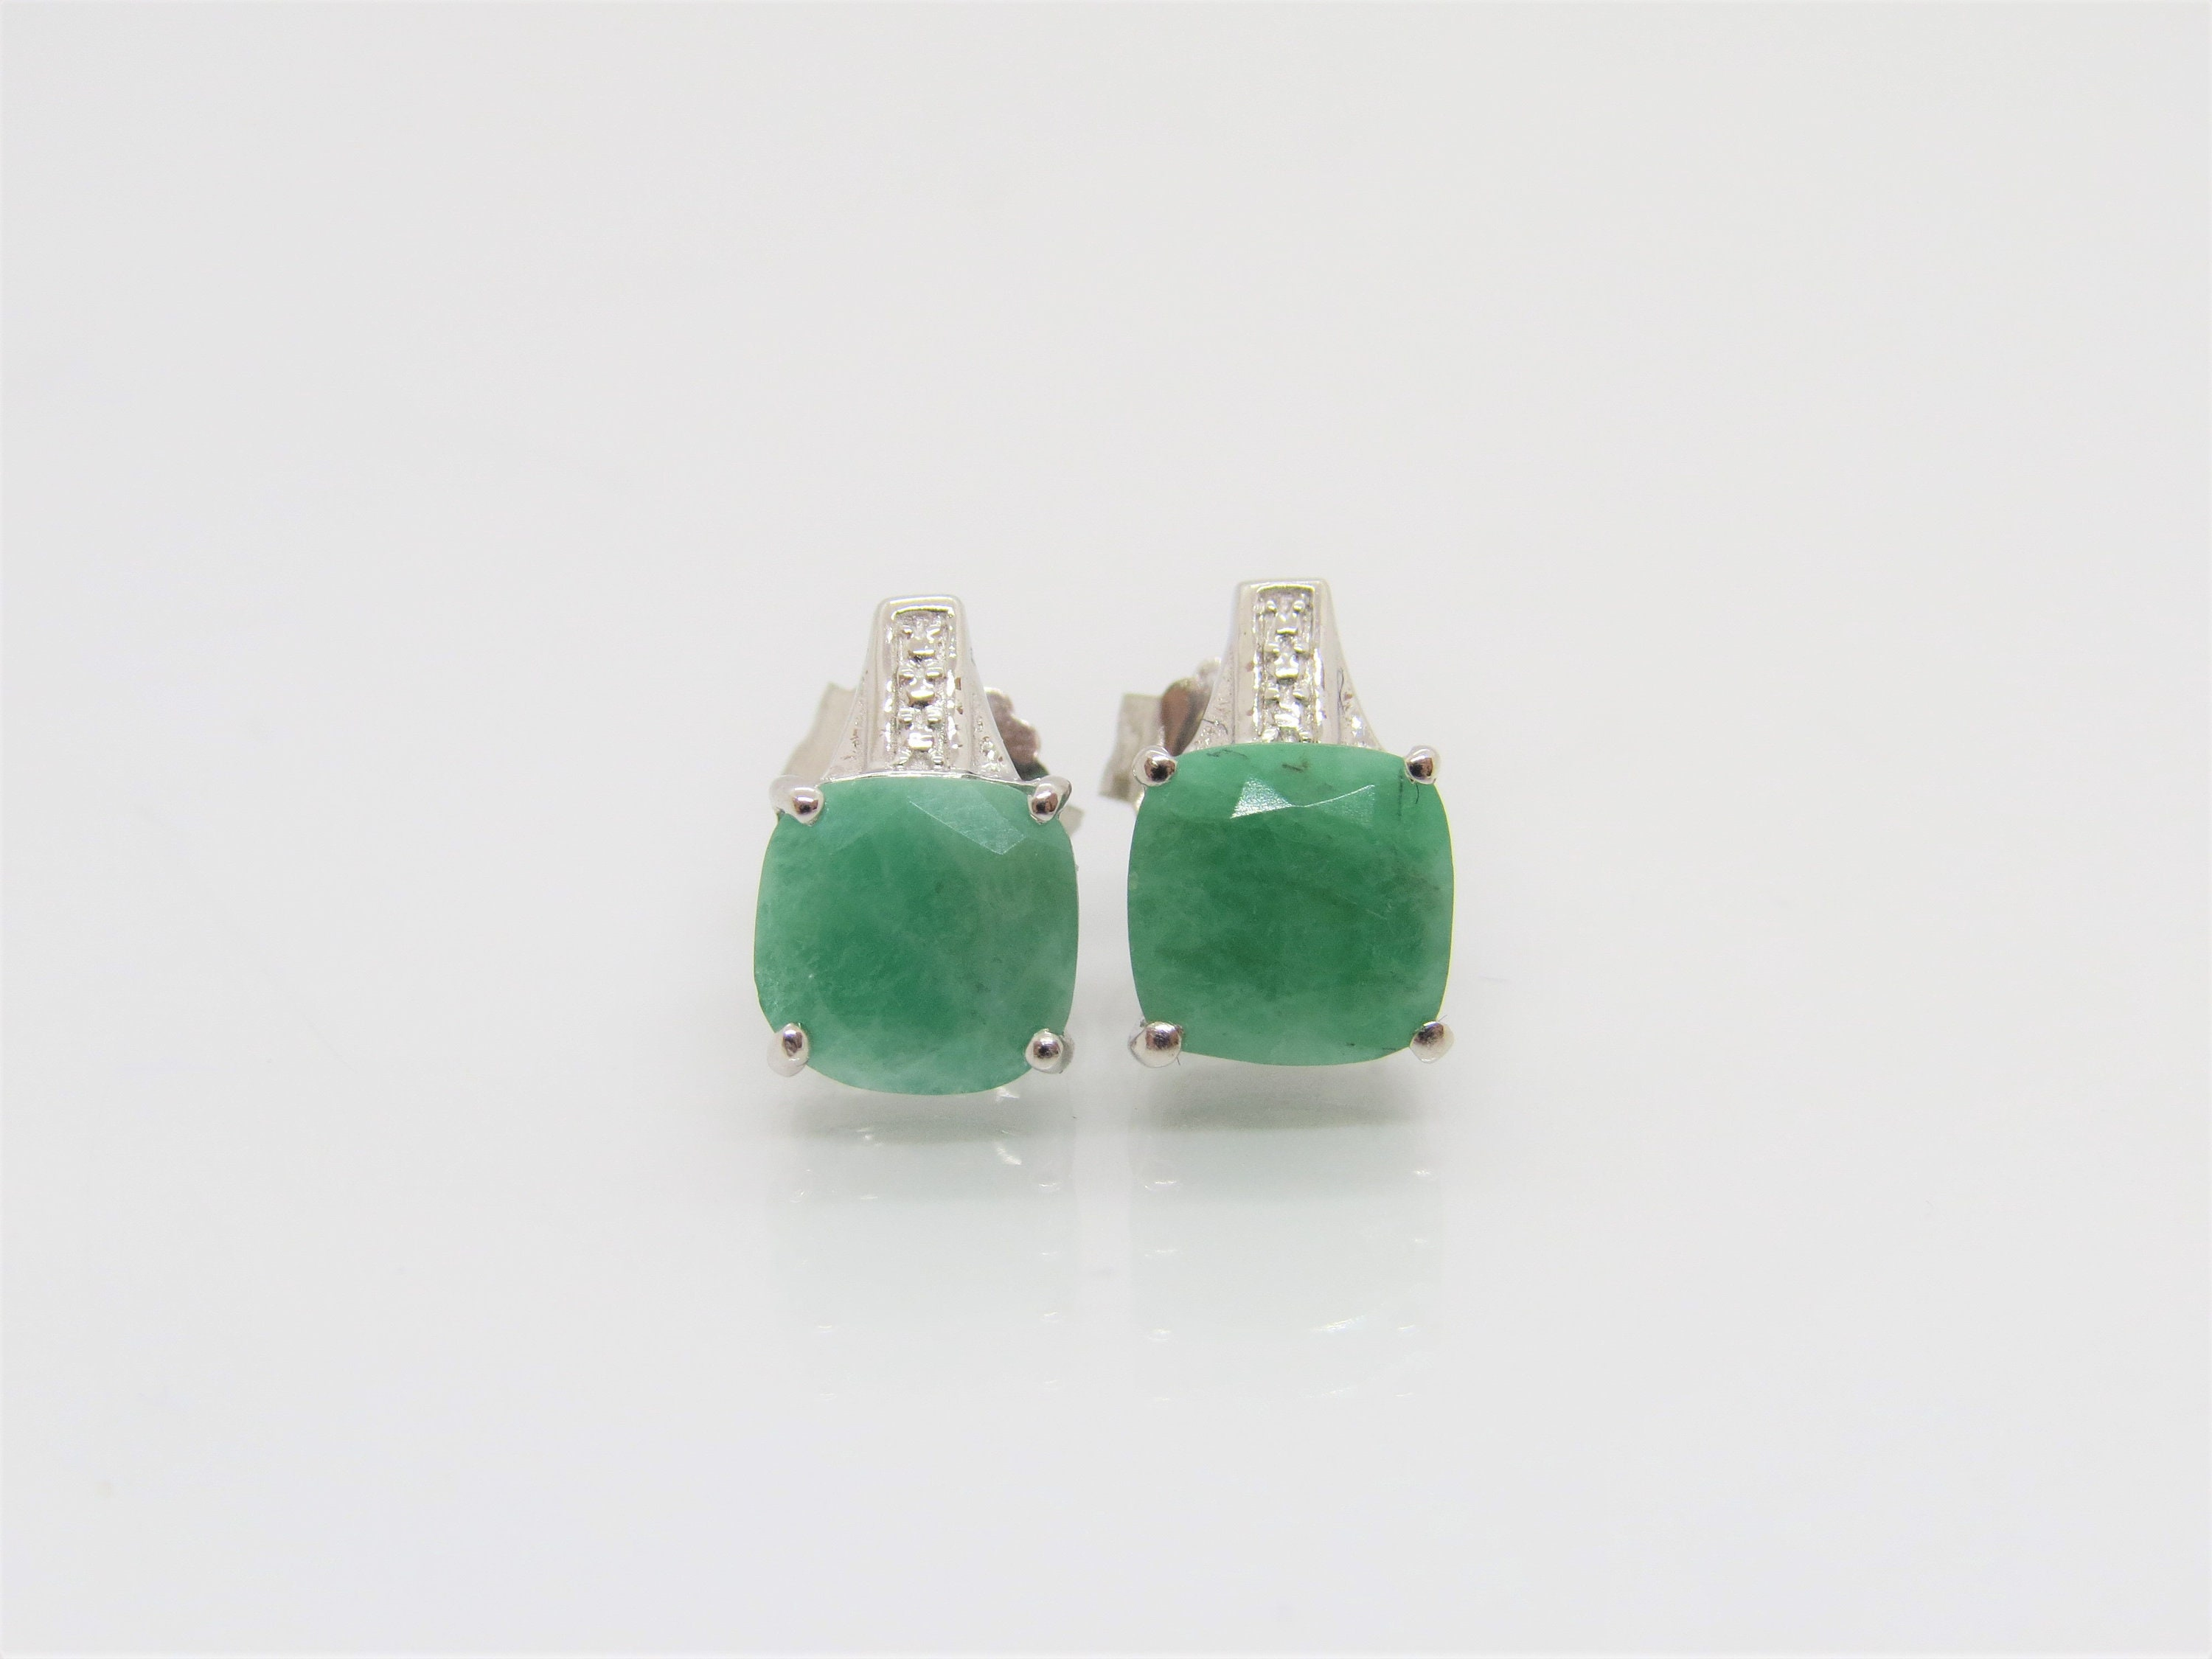 canada finley diamond earrings jewellery premier coins img and trade gold ladies company emerald estate s natural